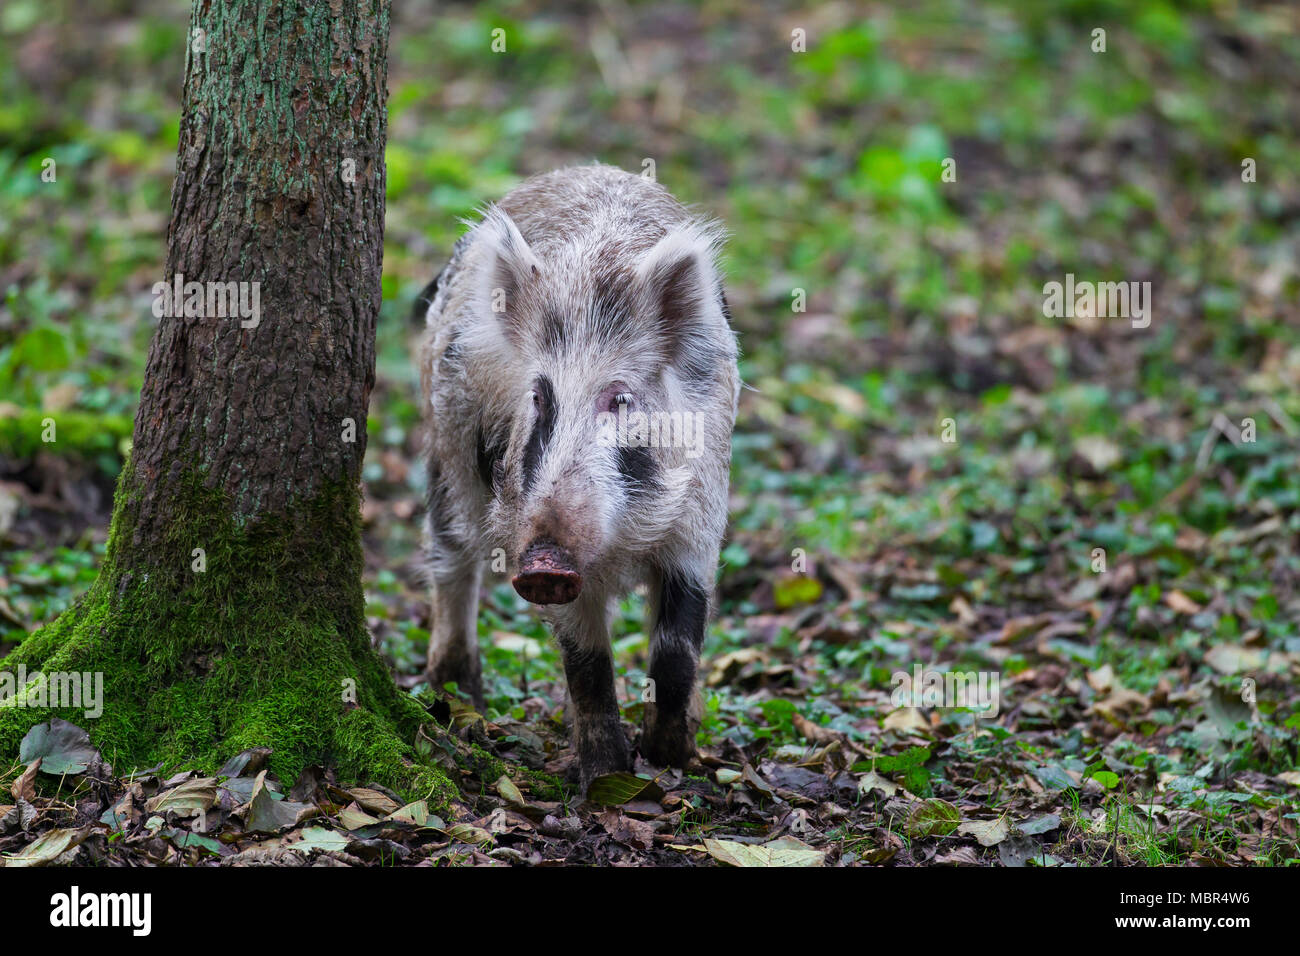 Spotted wild boar (Sus scrofa) brindled piglet foraging in autumn forest - Stock Image